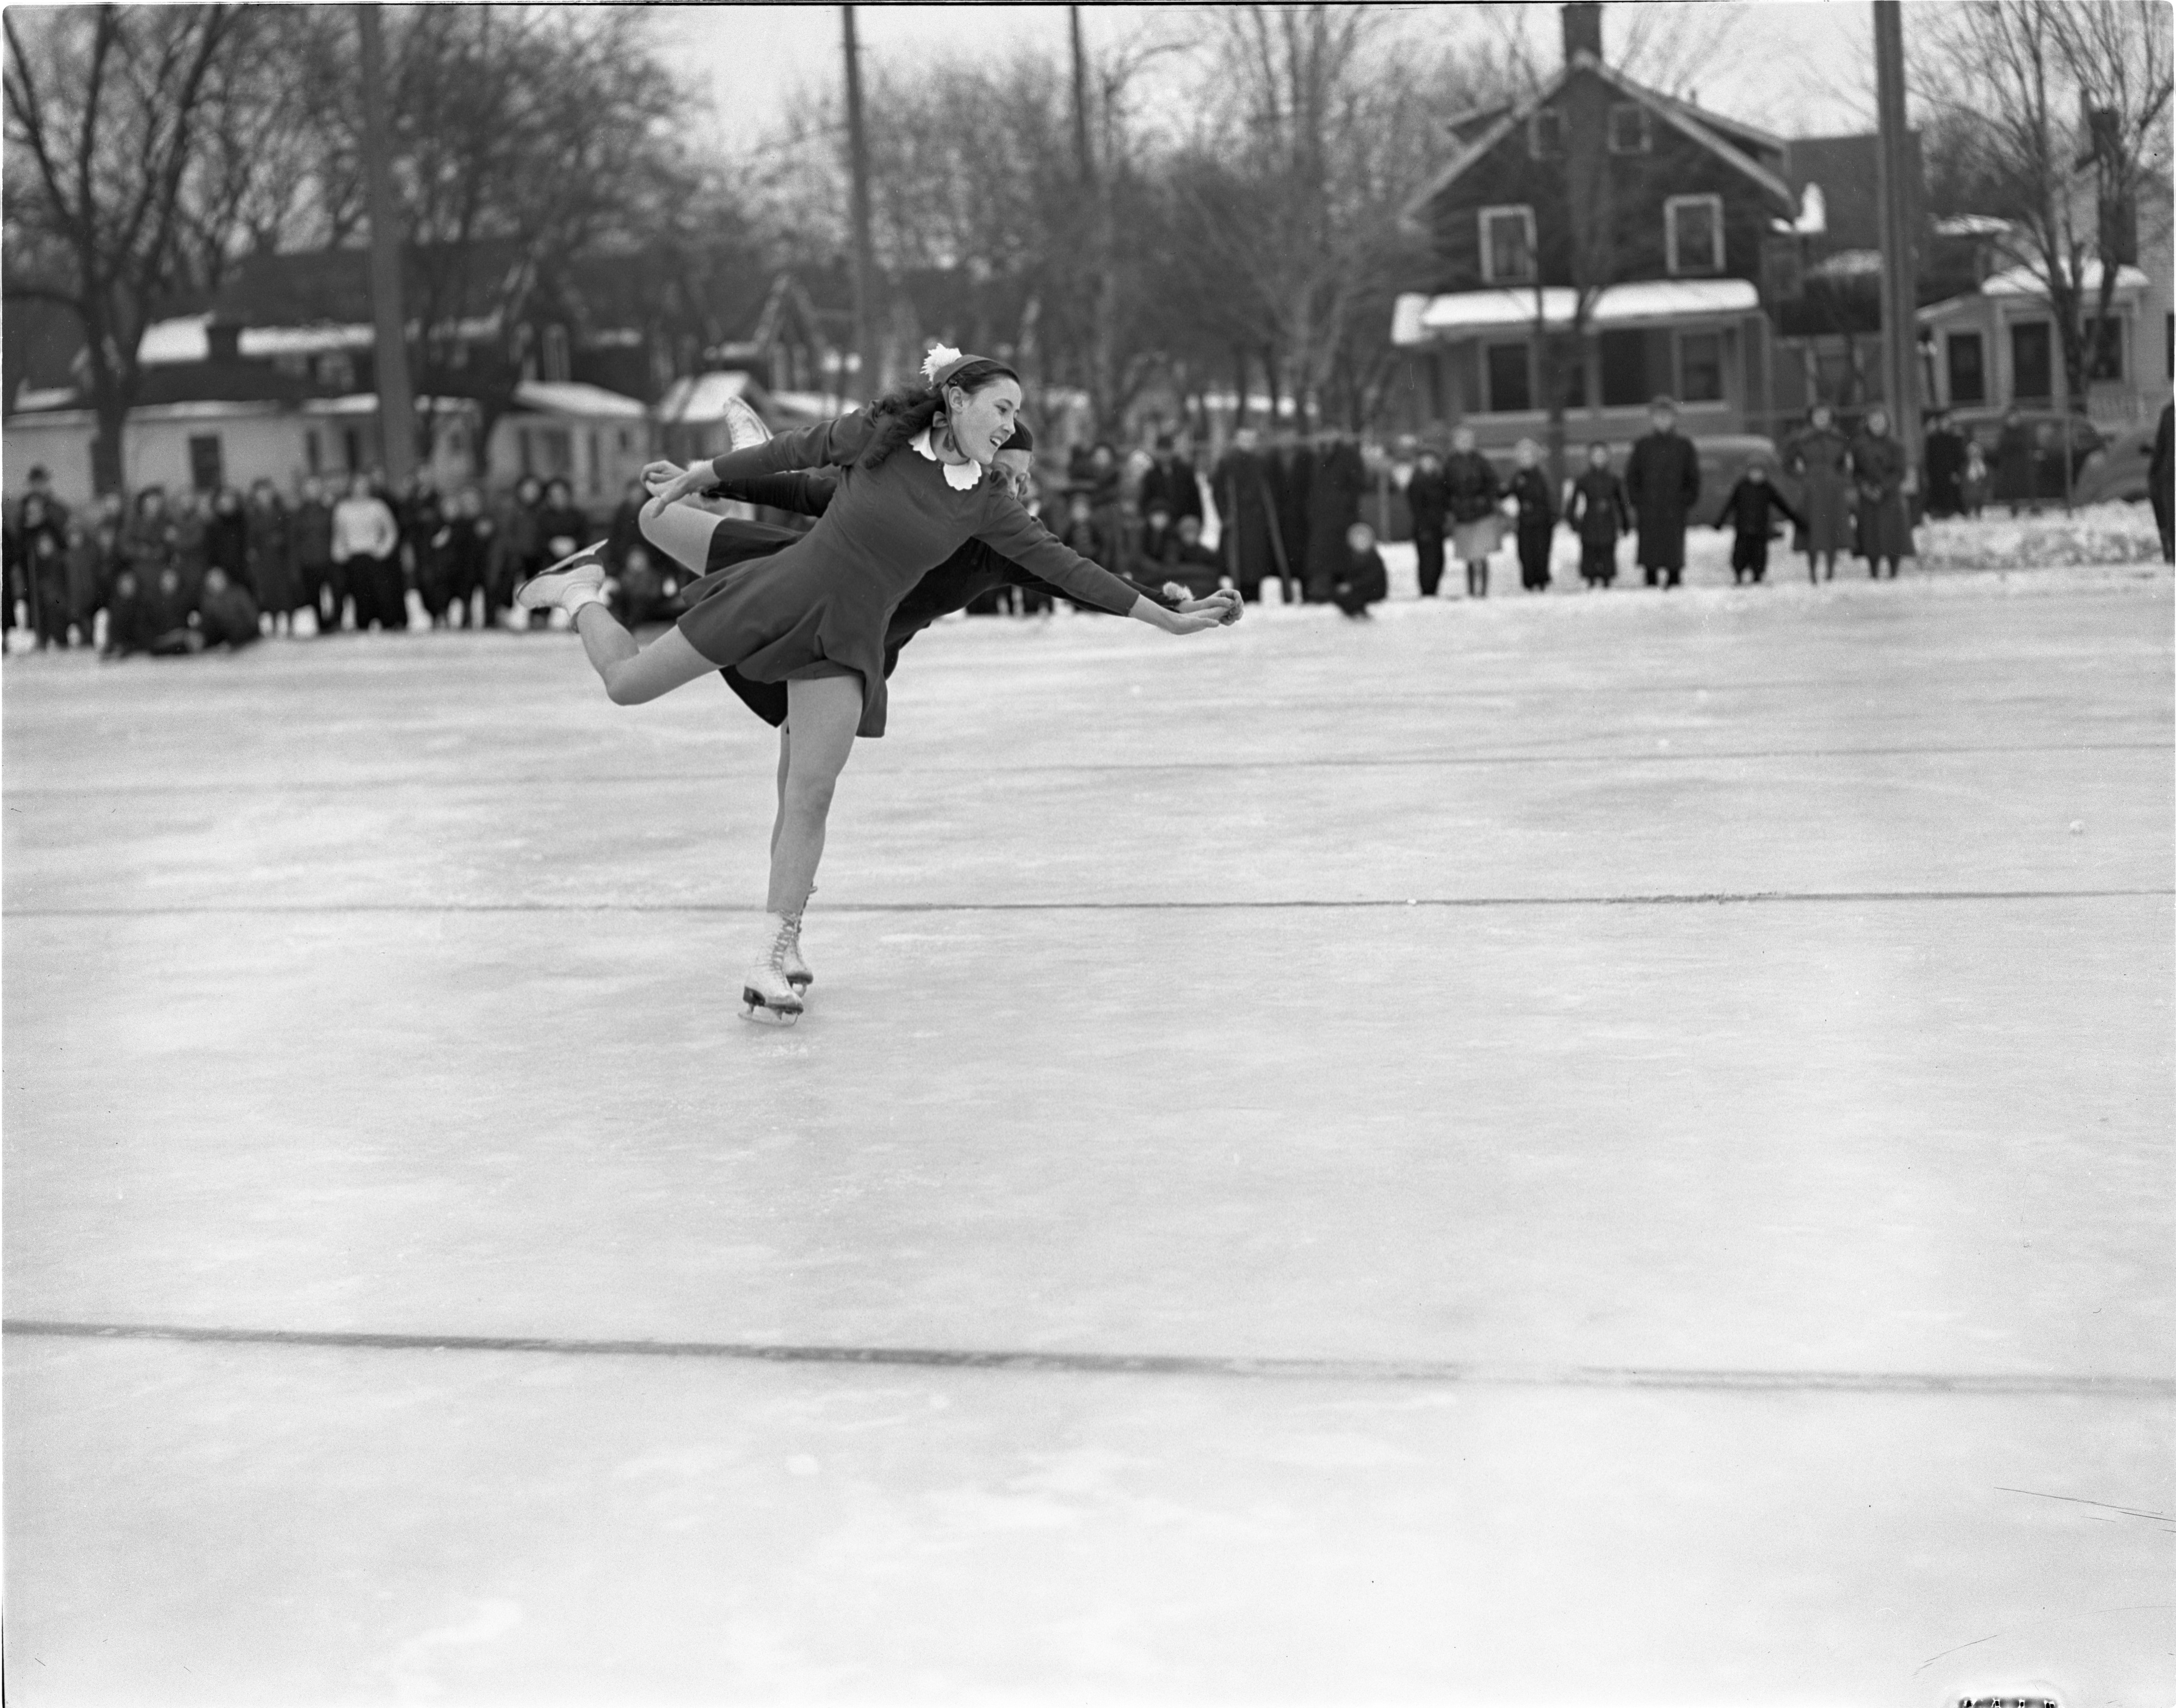 Mary Frances Greschke & Mary Jane Courtright Perform At The City Skating Carnival, January 1939 image